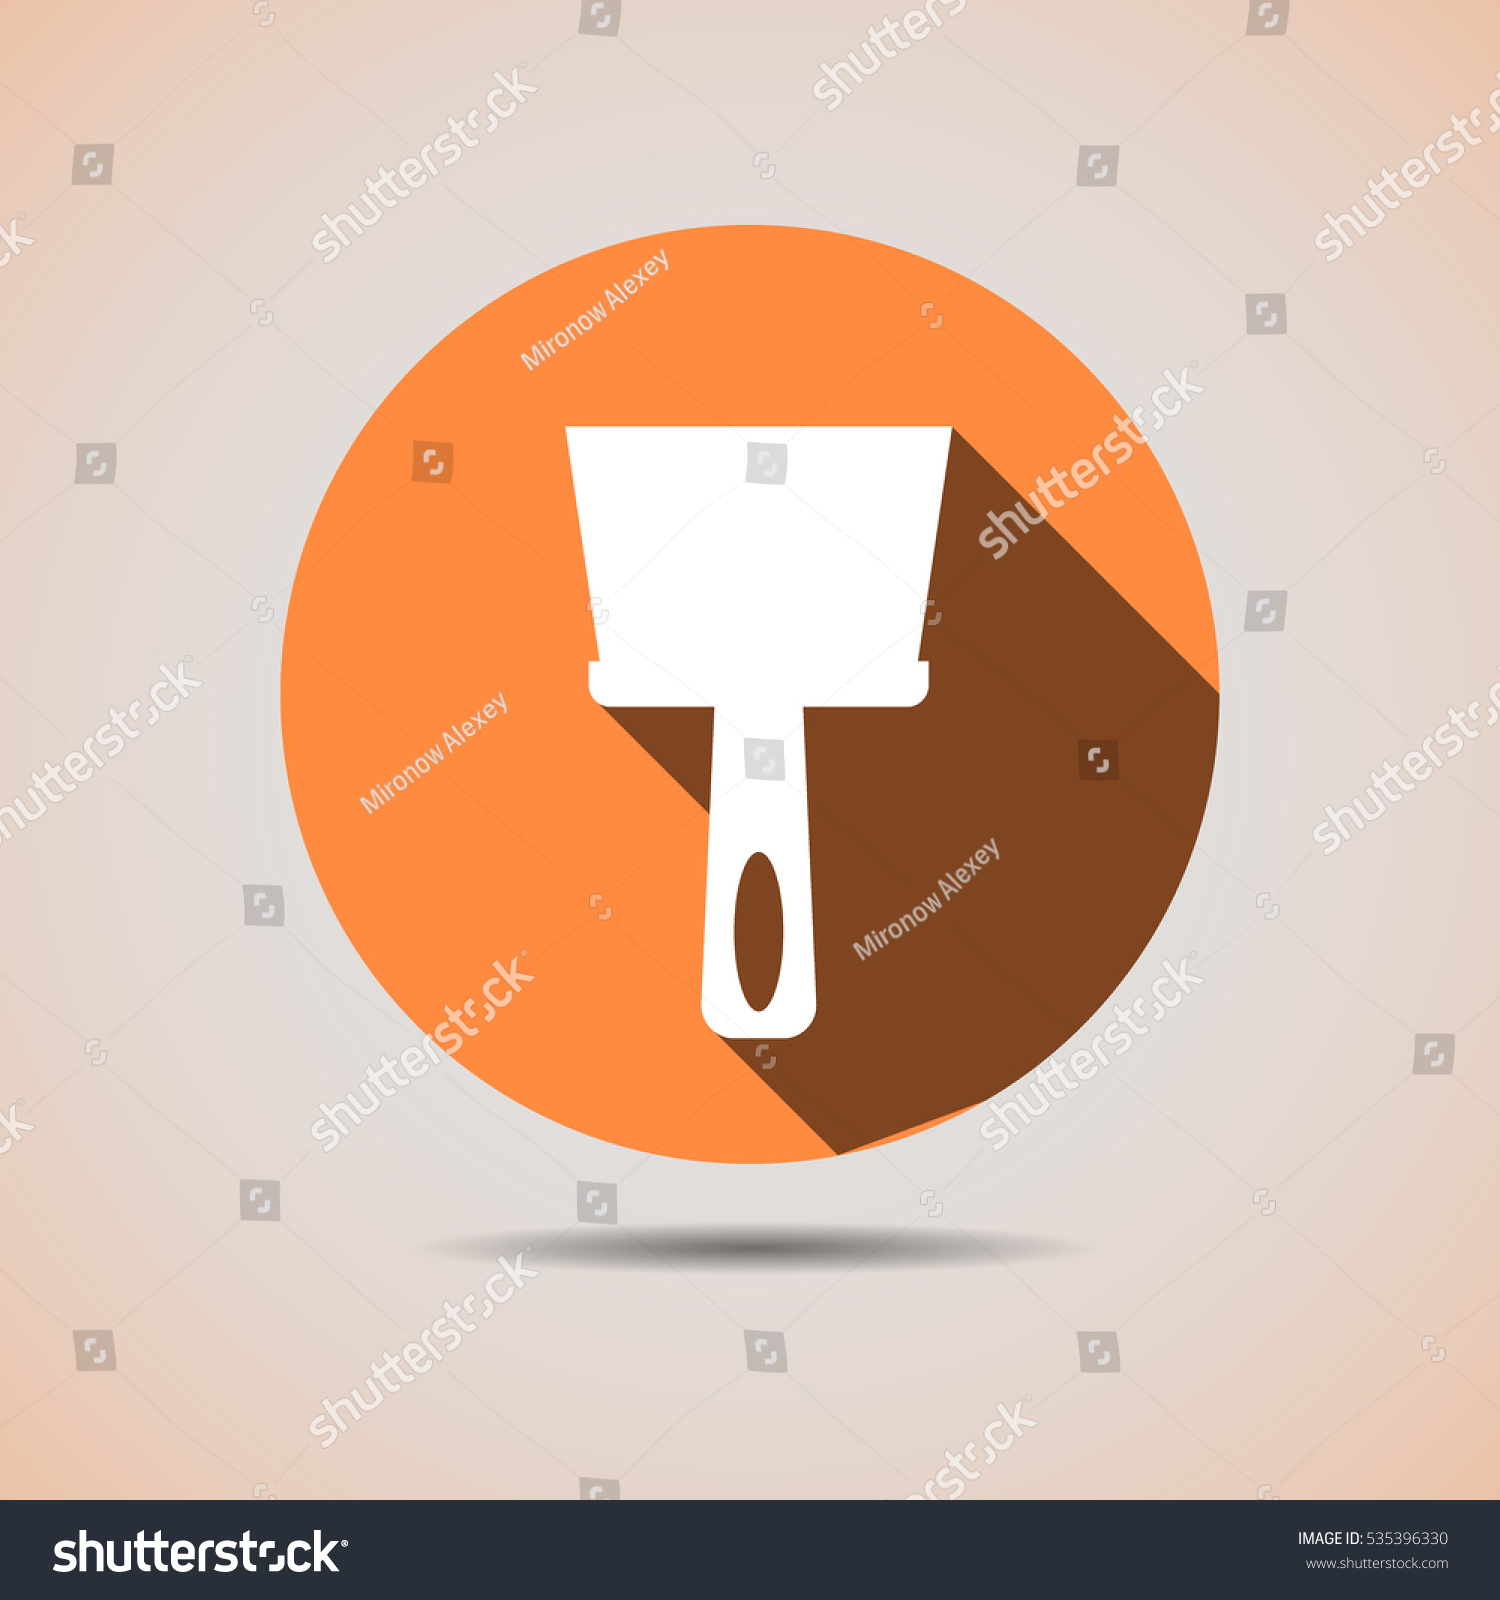 Background image align - Construction Trowel Icon To Align The Walls In Orange Background